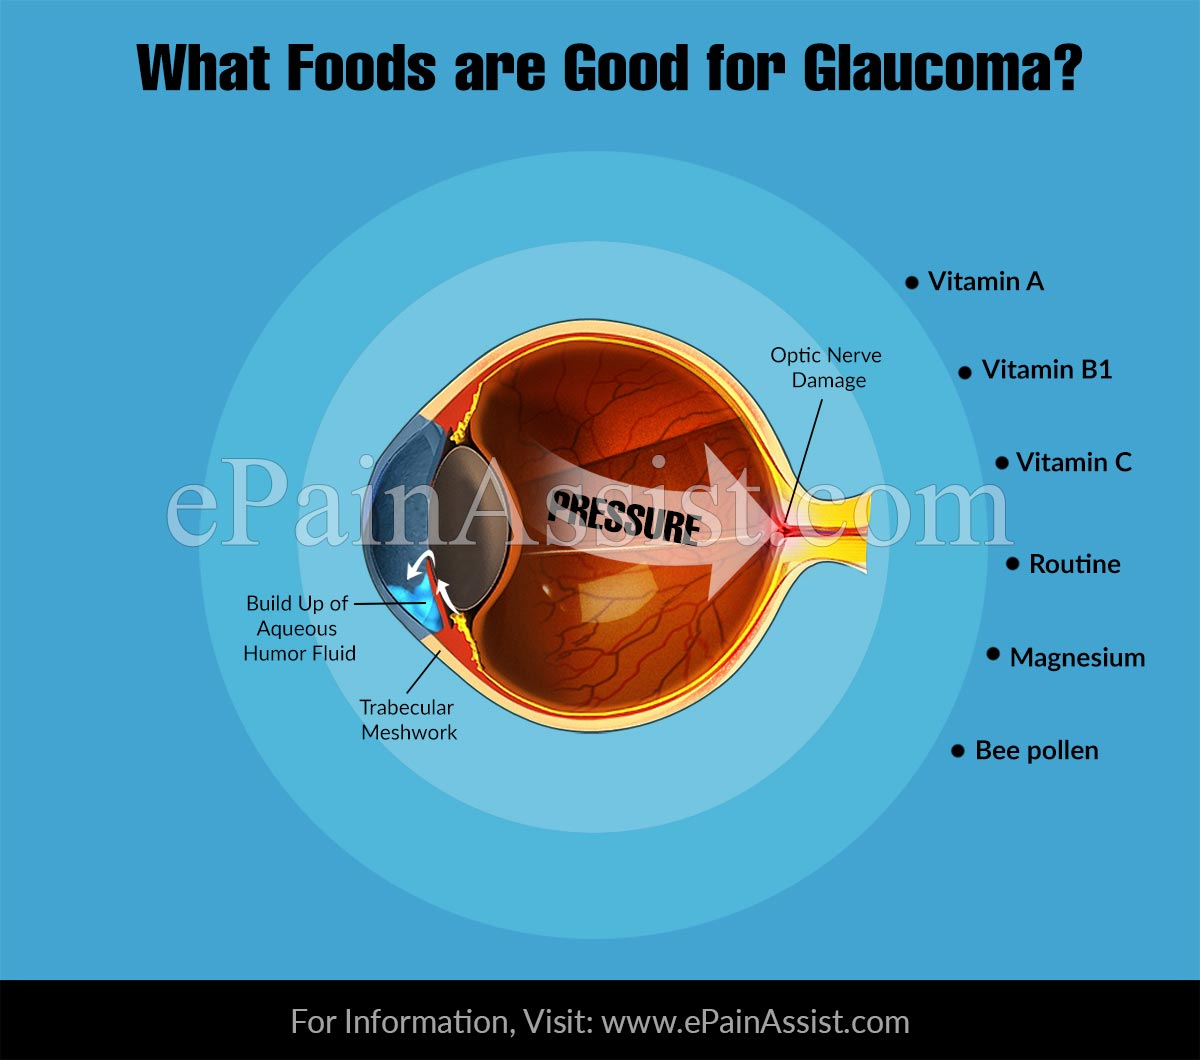 What Foods are Good for Glaucoma?